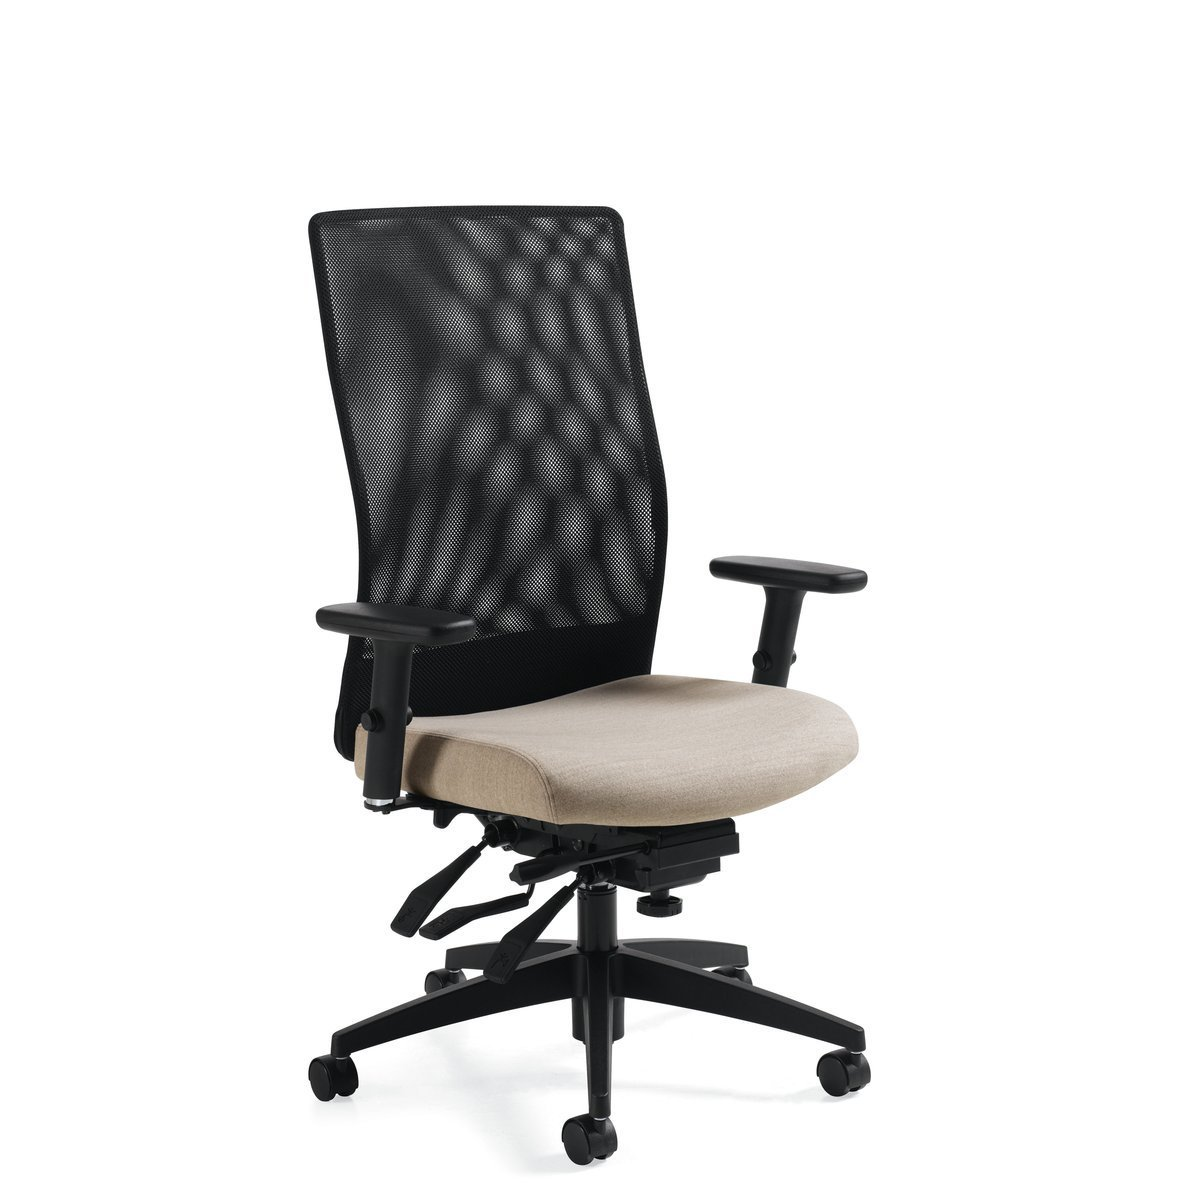 Weev high-backed multi-tilt chair, model 2220-3. This chair has been placed on a white background.